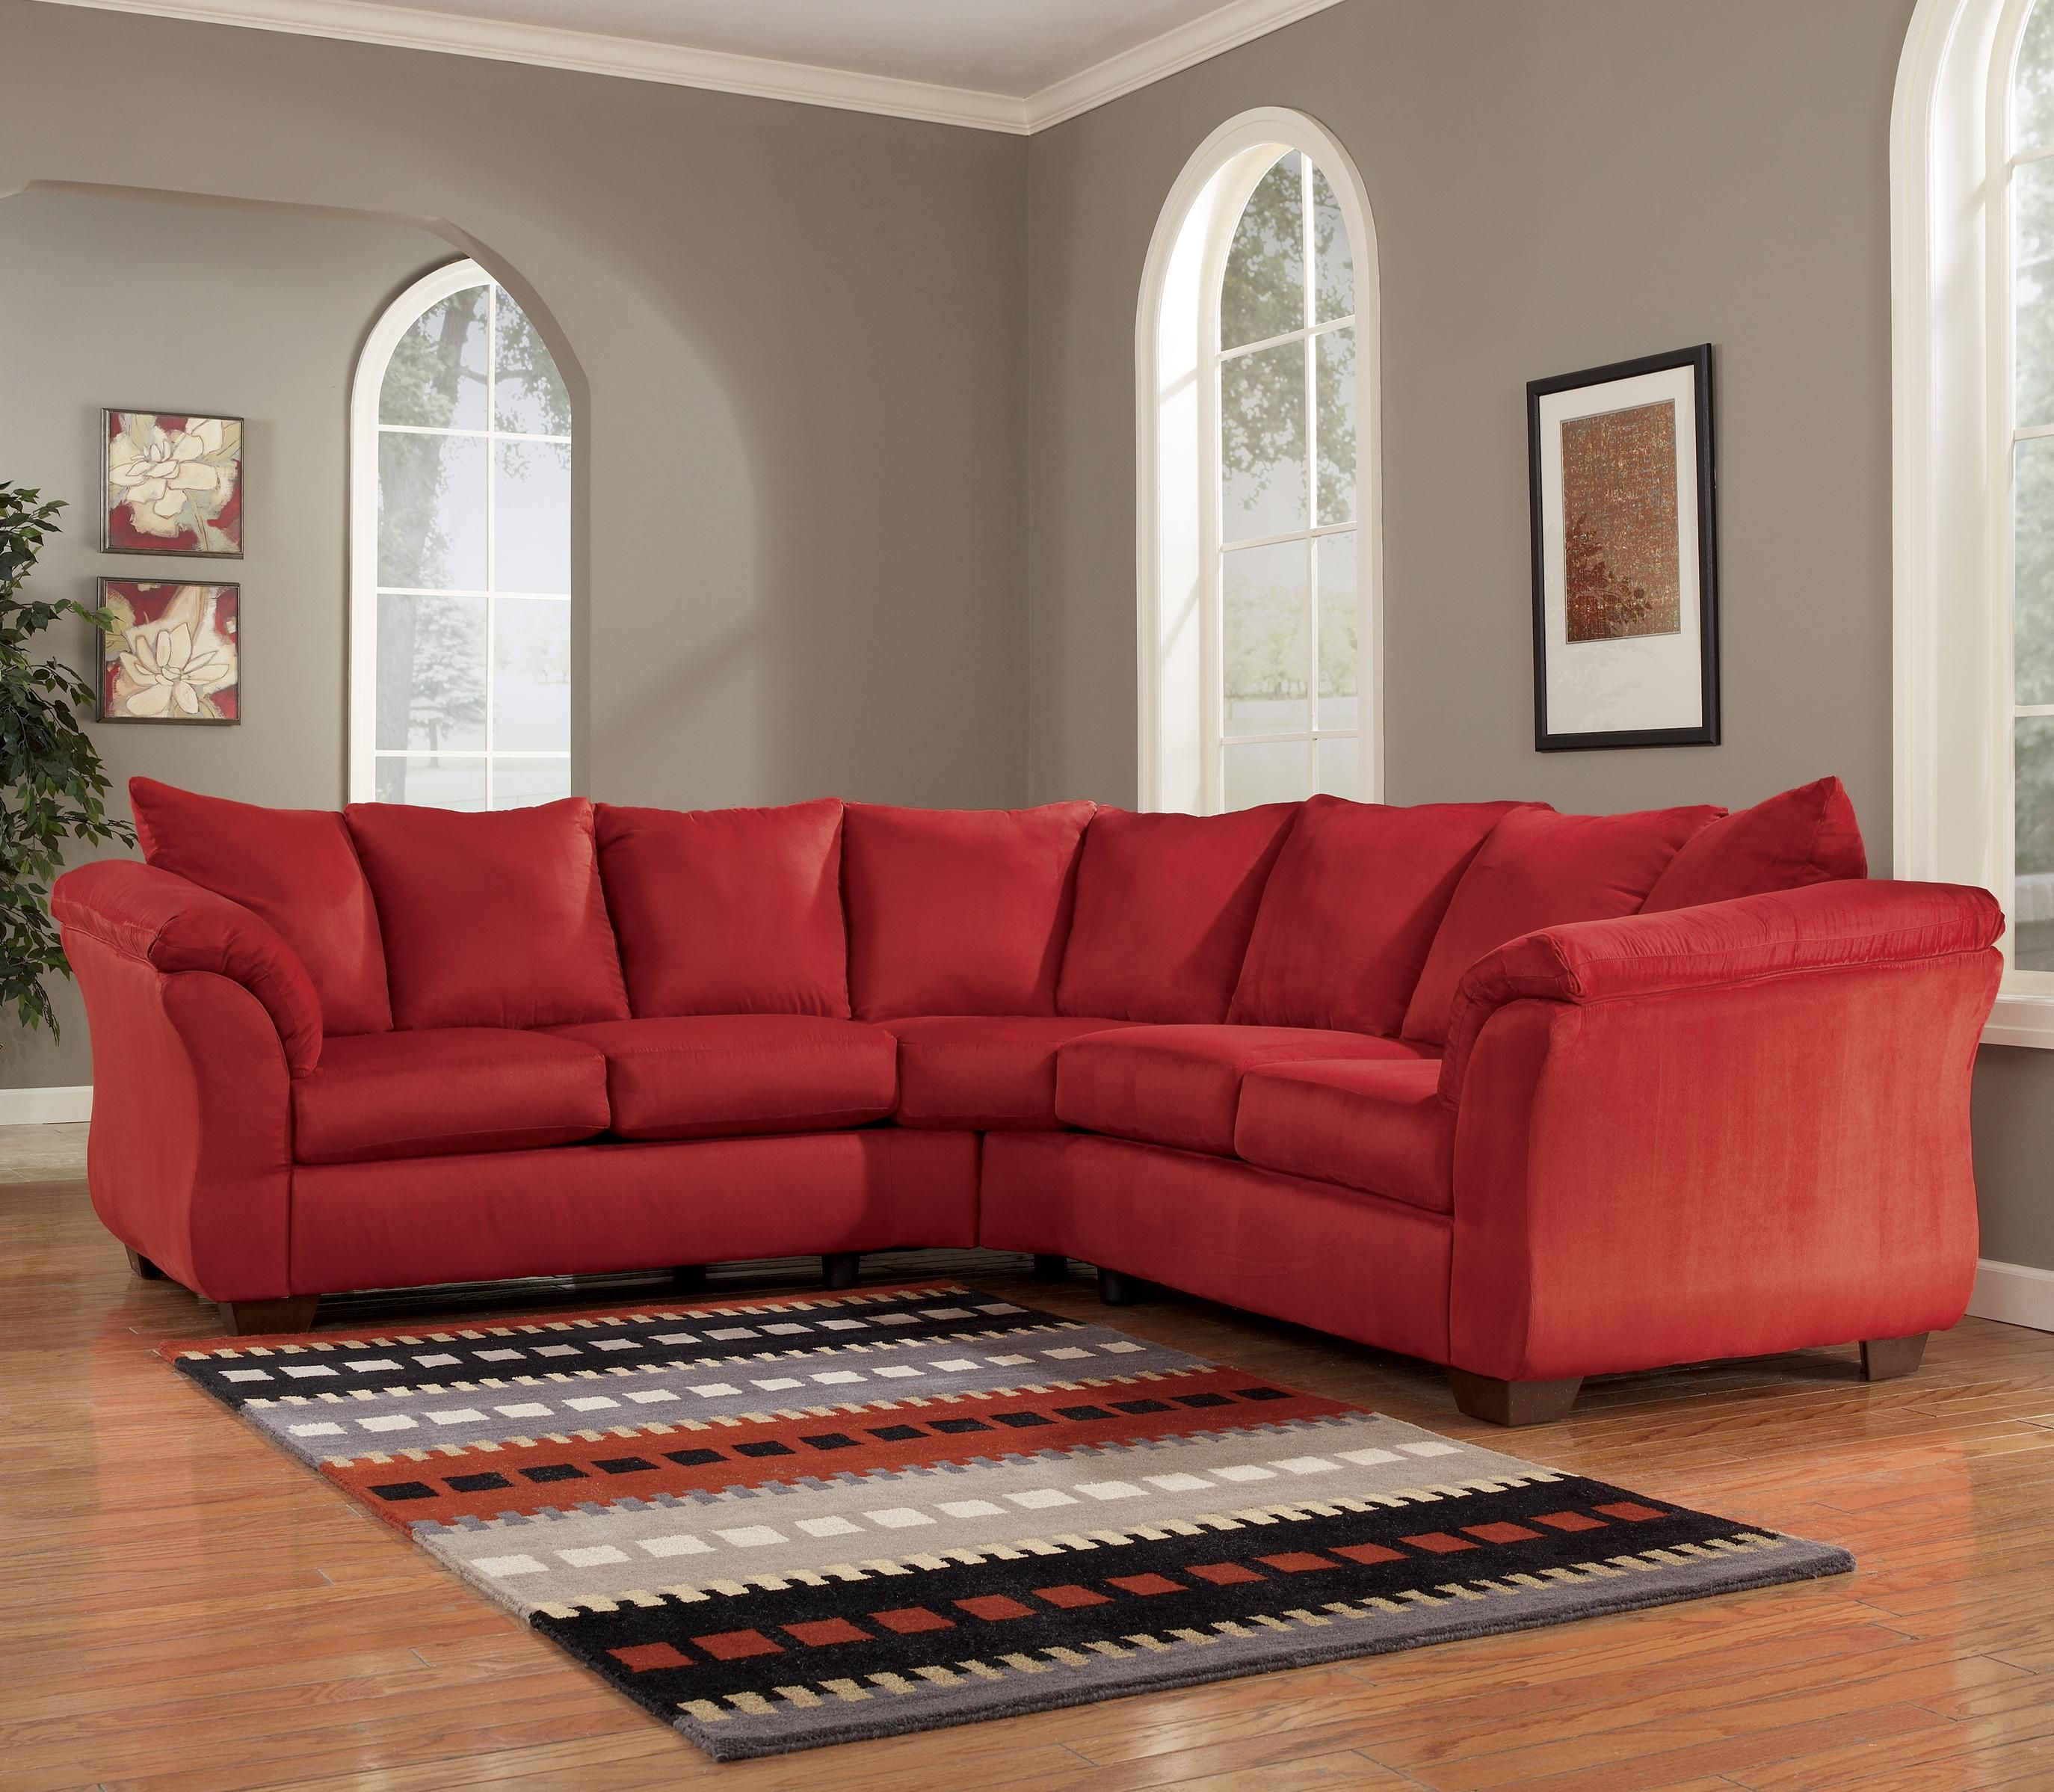 Darcy Salsa Sectional Sofa by Signature Design by Ashley